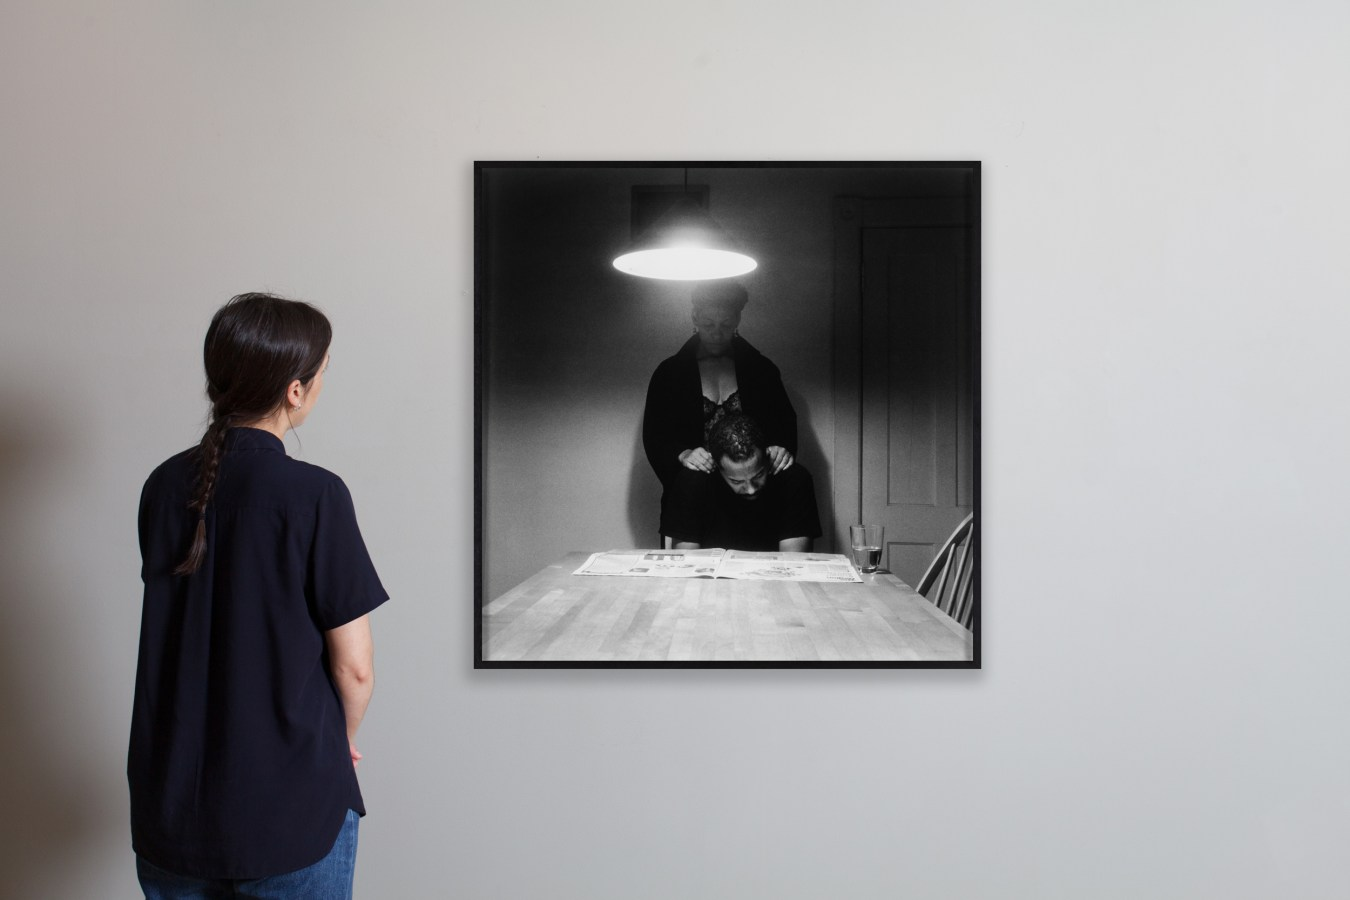 Installation view of a woman looking at a framed photograph.